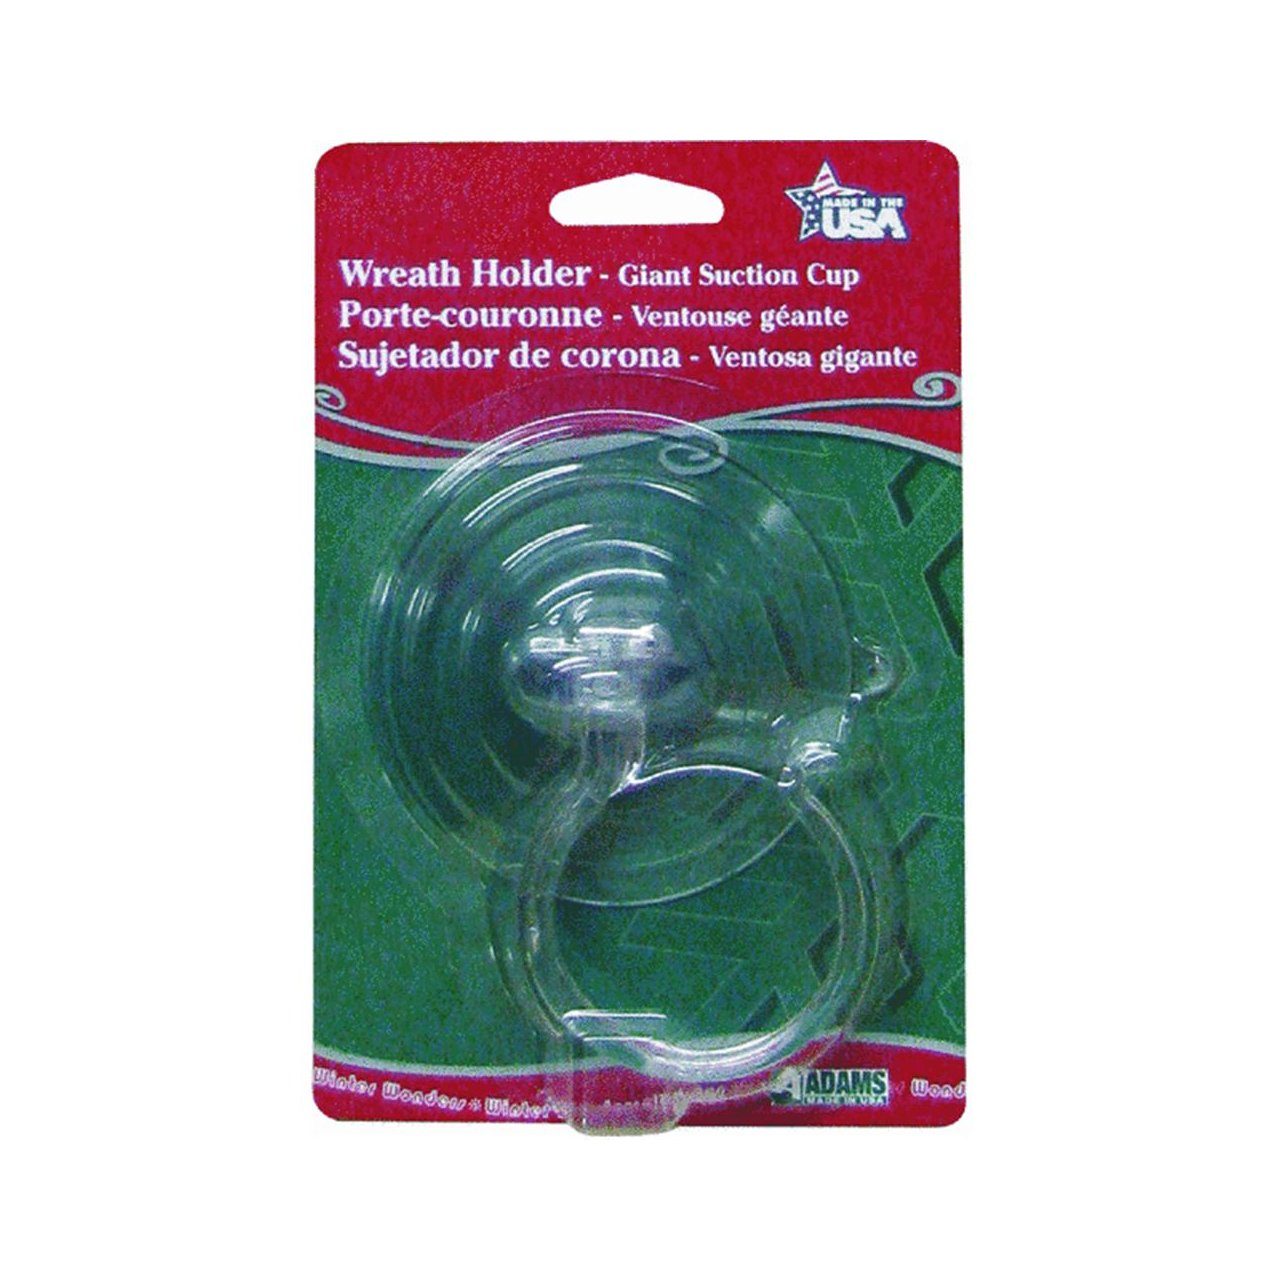 Adams Suction Cup Wreath Holder Holds for up to 10 Lbs, Clear, Pack of 4